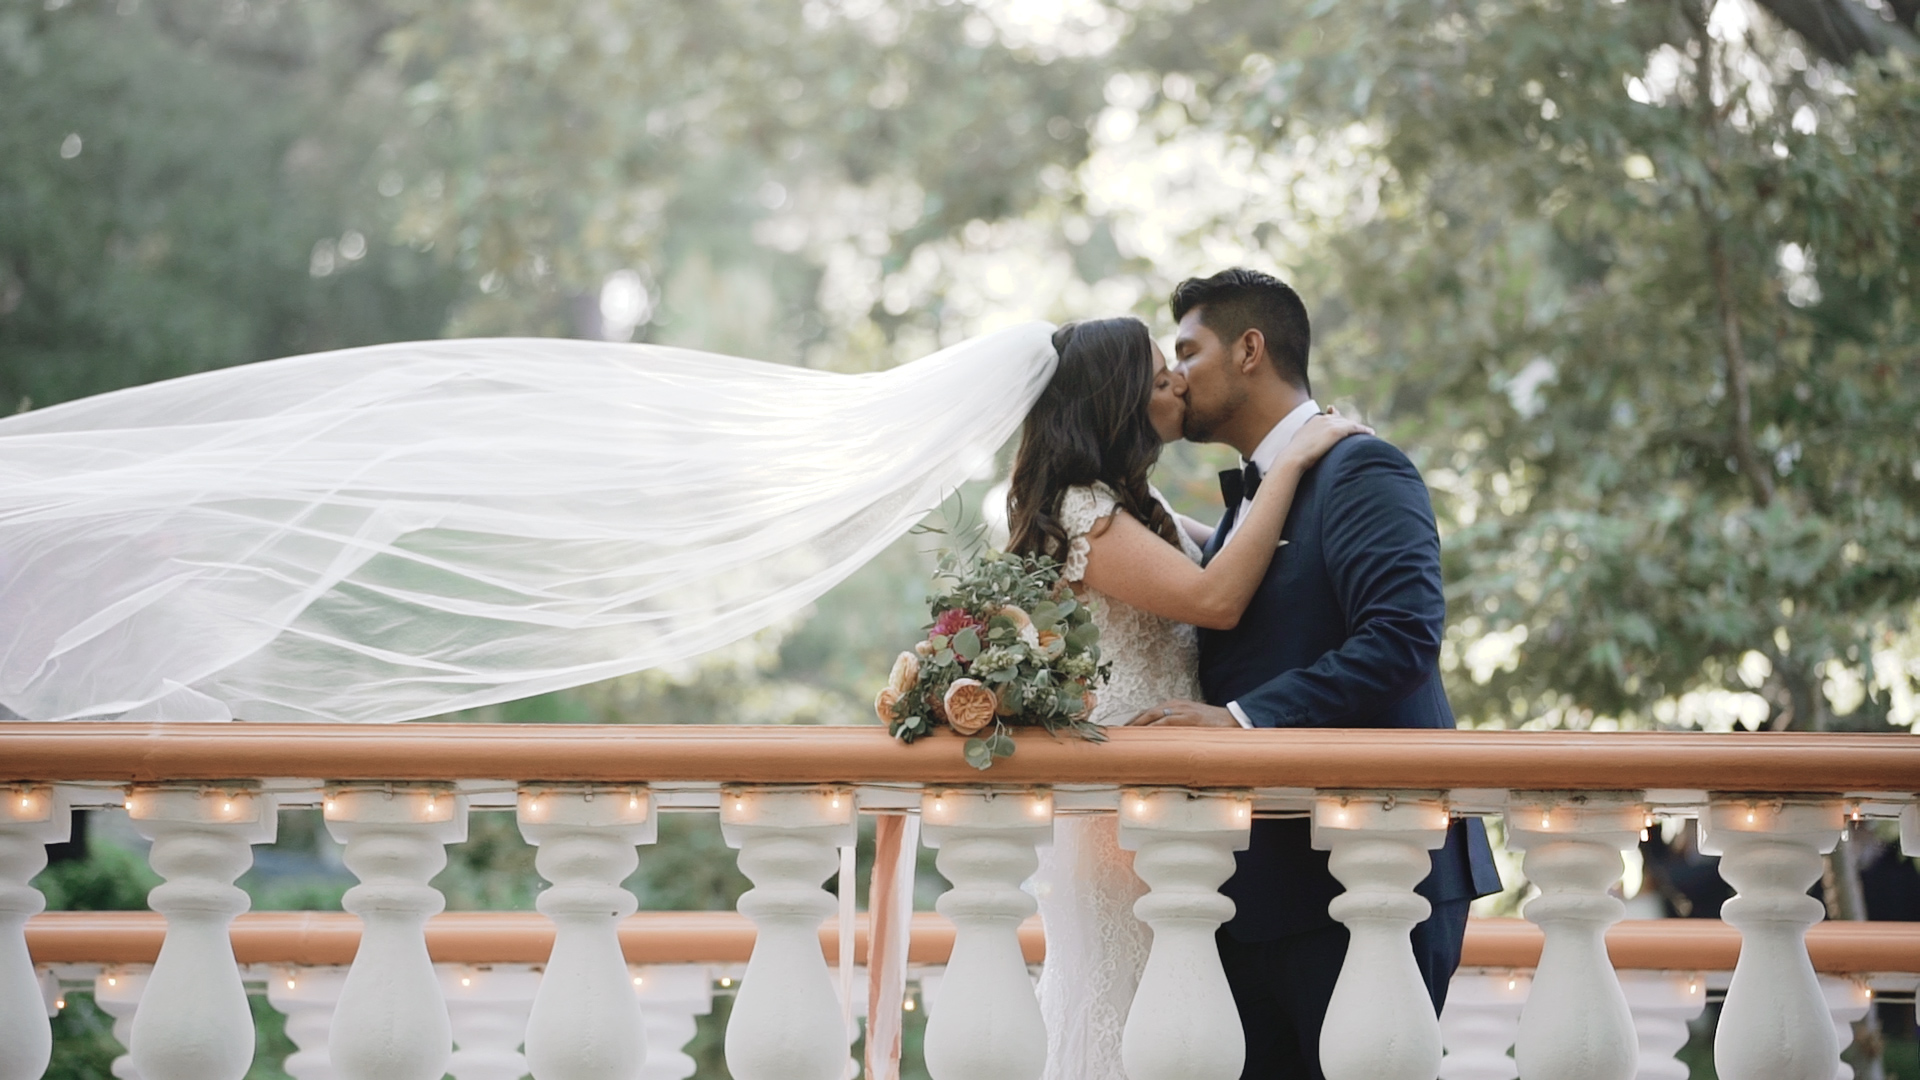 THE NOVEL - Most popularPackage Includes:- Cinematic mini movie (up to 6 minutes)- Edited Ceremony, toasts, and special dances- 8 hours of wedding day coverage- 2 videographers- Online Delivery of edits